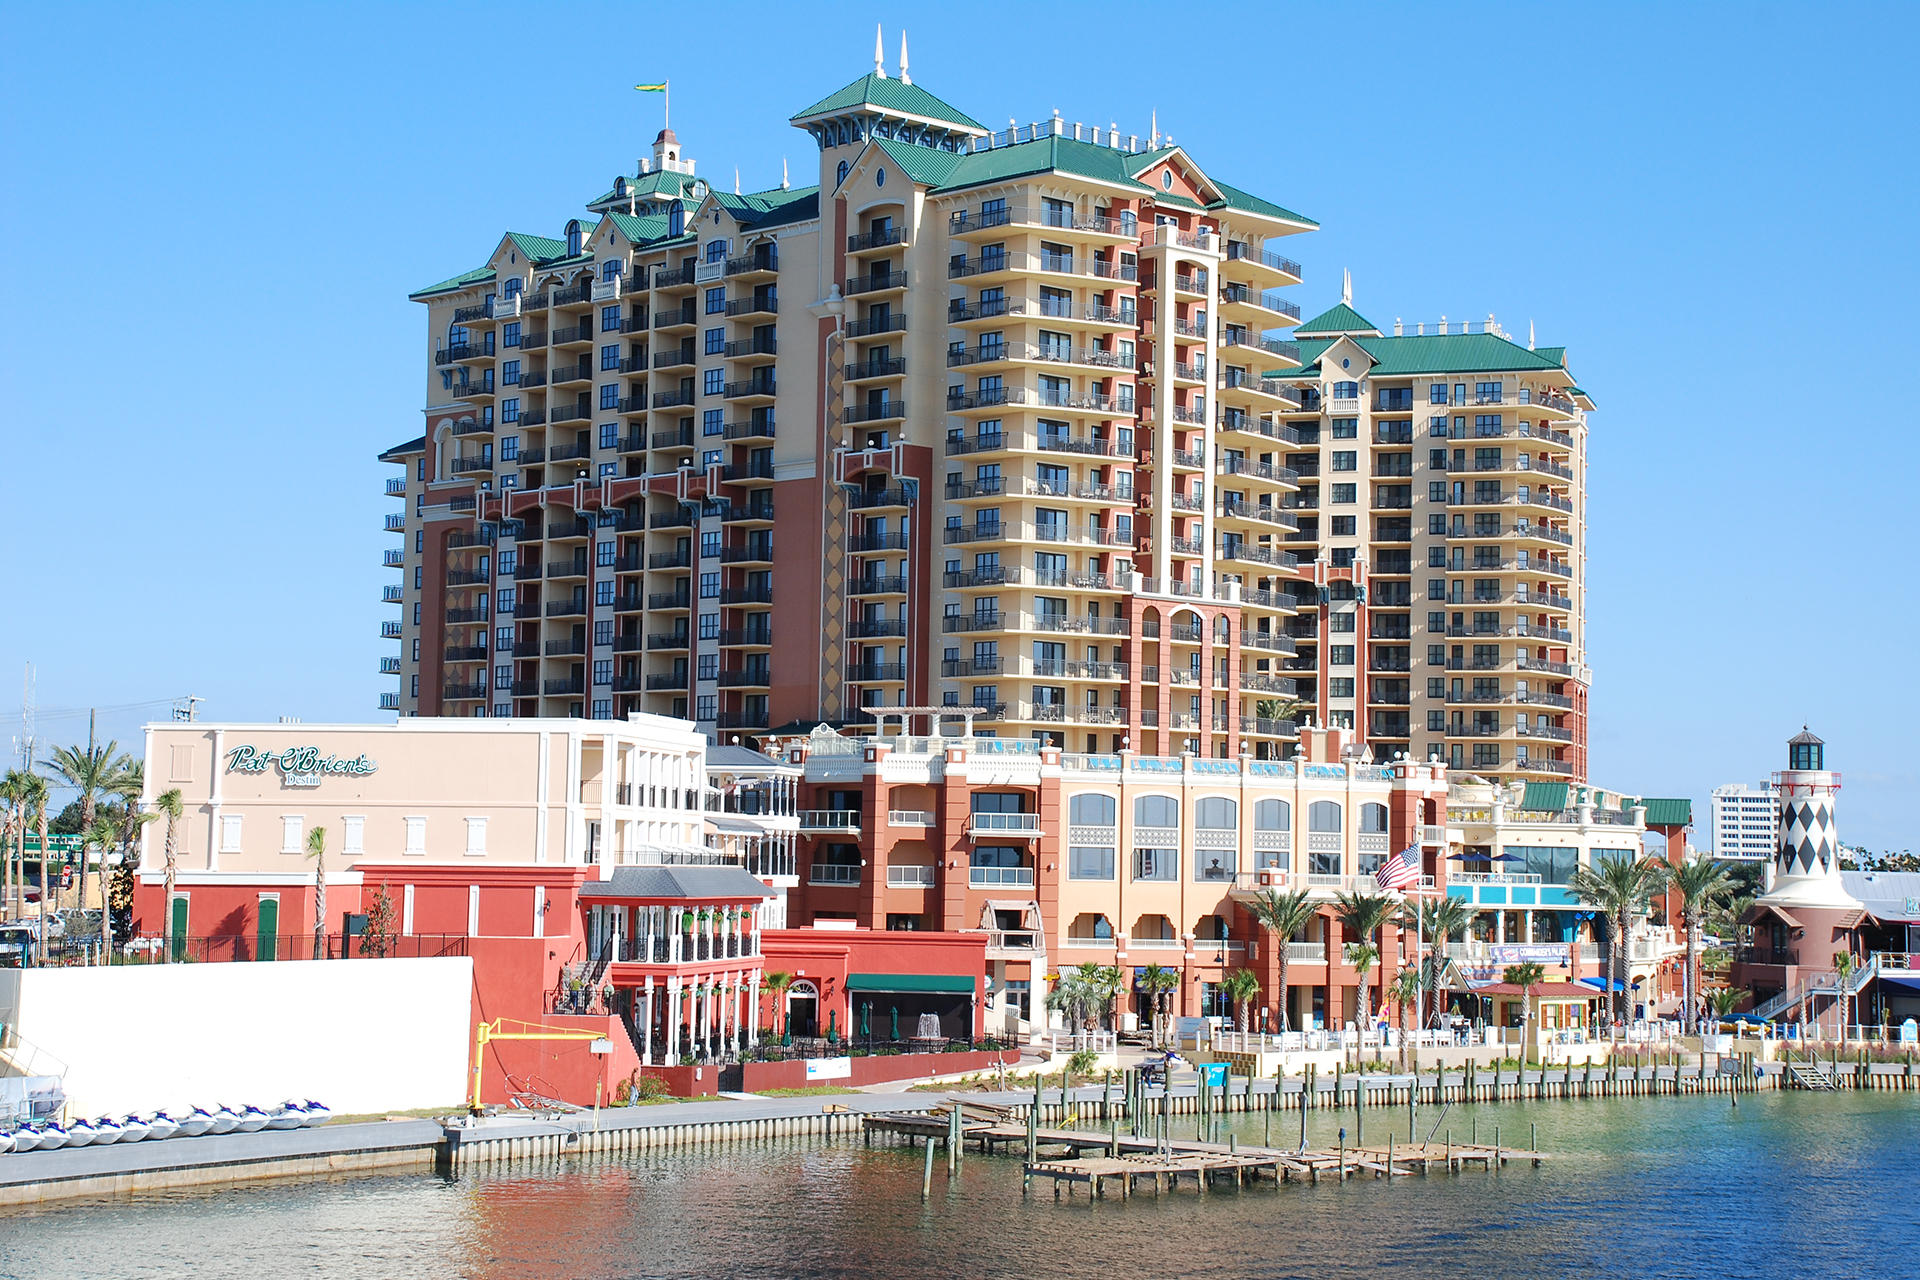 """Fractional Real Estate Ownership at the Emerald Grande.  Each Fractional interest entitles the owner to 6 weeks of exclusive use per year.  These weeks are call """"Annual Reserved Use Period.""""  The ''Use Periods'' consist of two rotating consecutive summer weeks, plus four additional rotating weeks of use.  By rotating the ''Use Weeks'' each year, all owners are given equal access to holiday periods.  This Fractional Ownership Condo is a 3BR/3BA, 1,675SF with amazing Gulf views.   Other features include stainless appliances, granite countertops, 9ft ceilings, crown molding, Italian porcelain floors, & more. Emerald Grande boast amazing amenities, including large pool area, shopping, restaurants, harbor activities and much more.  Truly a Grande experience!  Owner Financing Available!"""